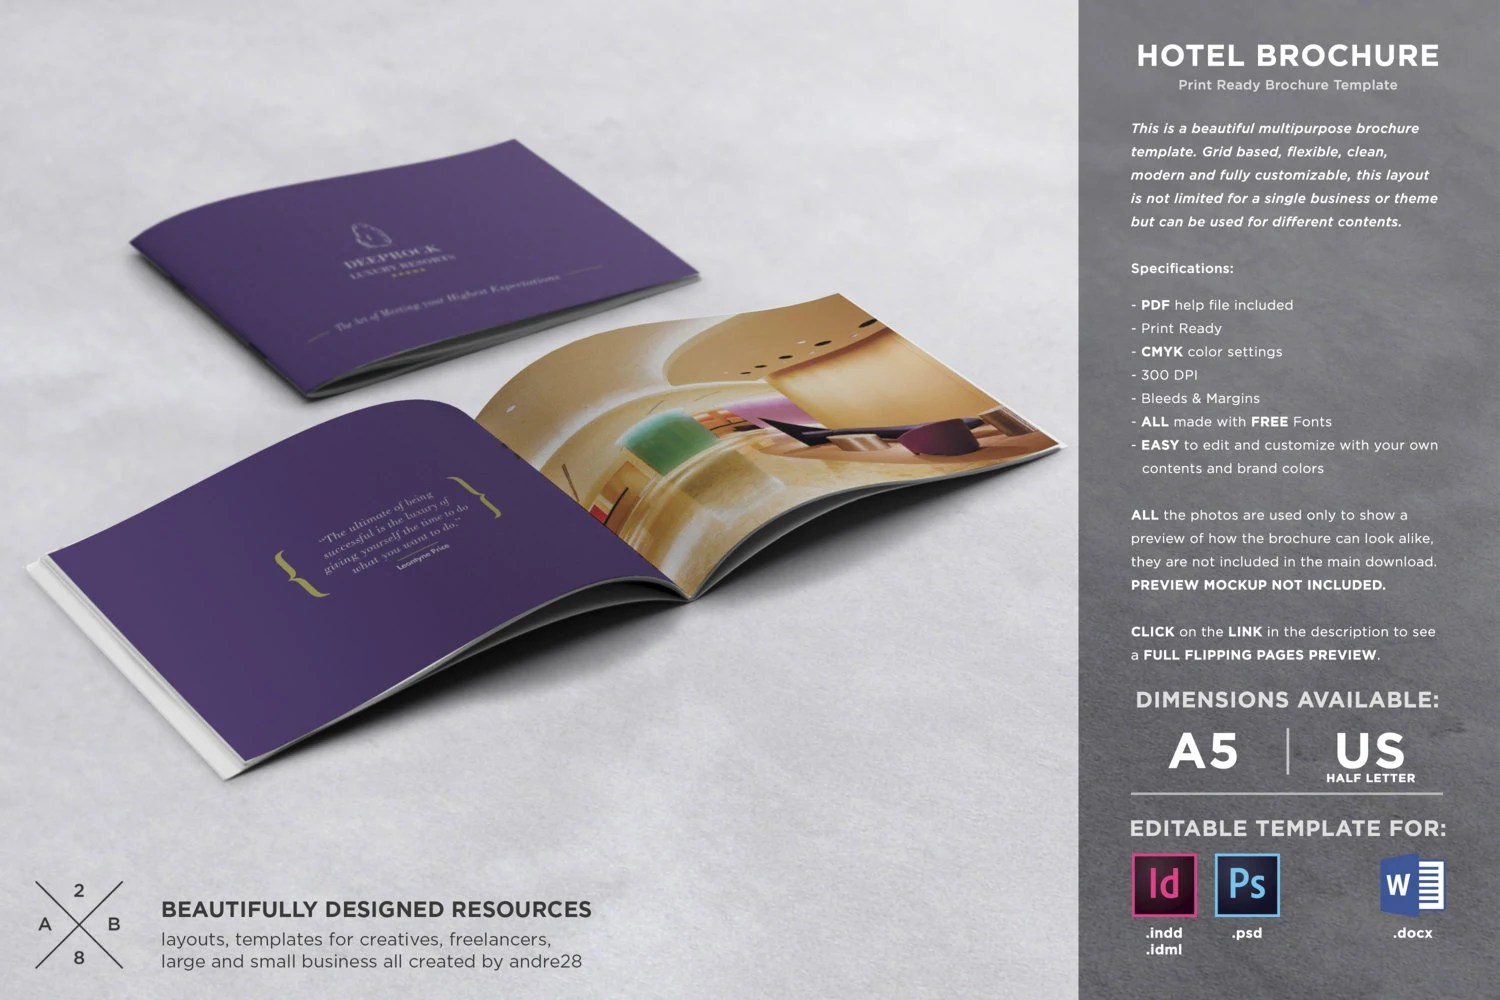 Hotel Brochure Template Etsy